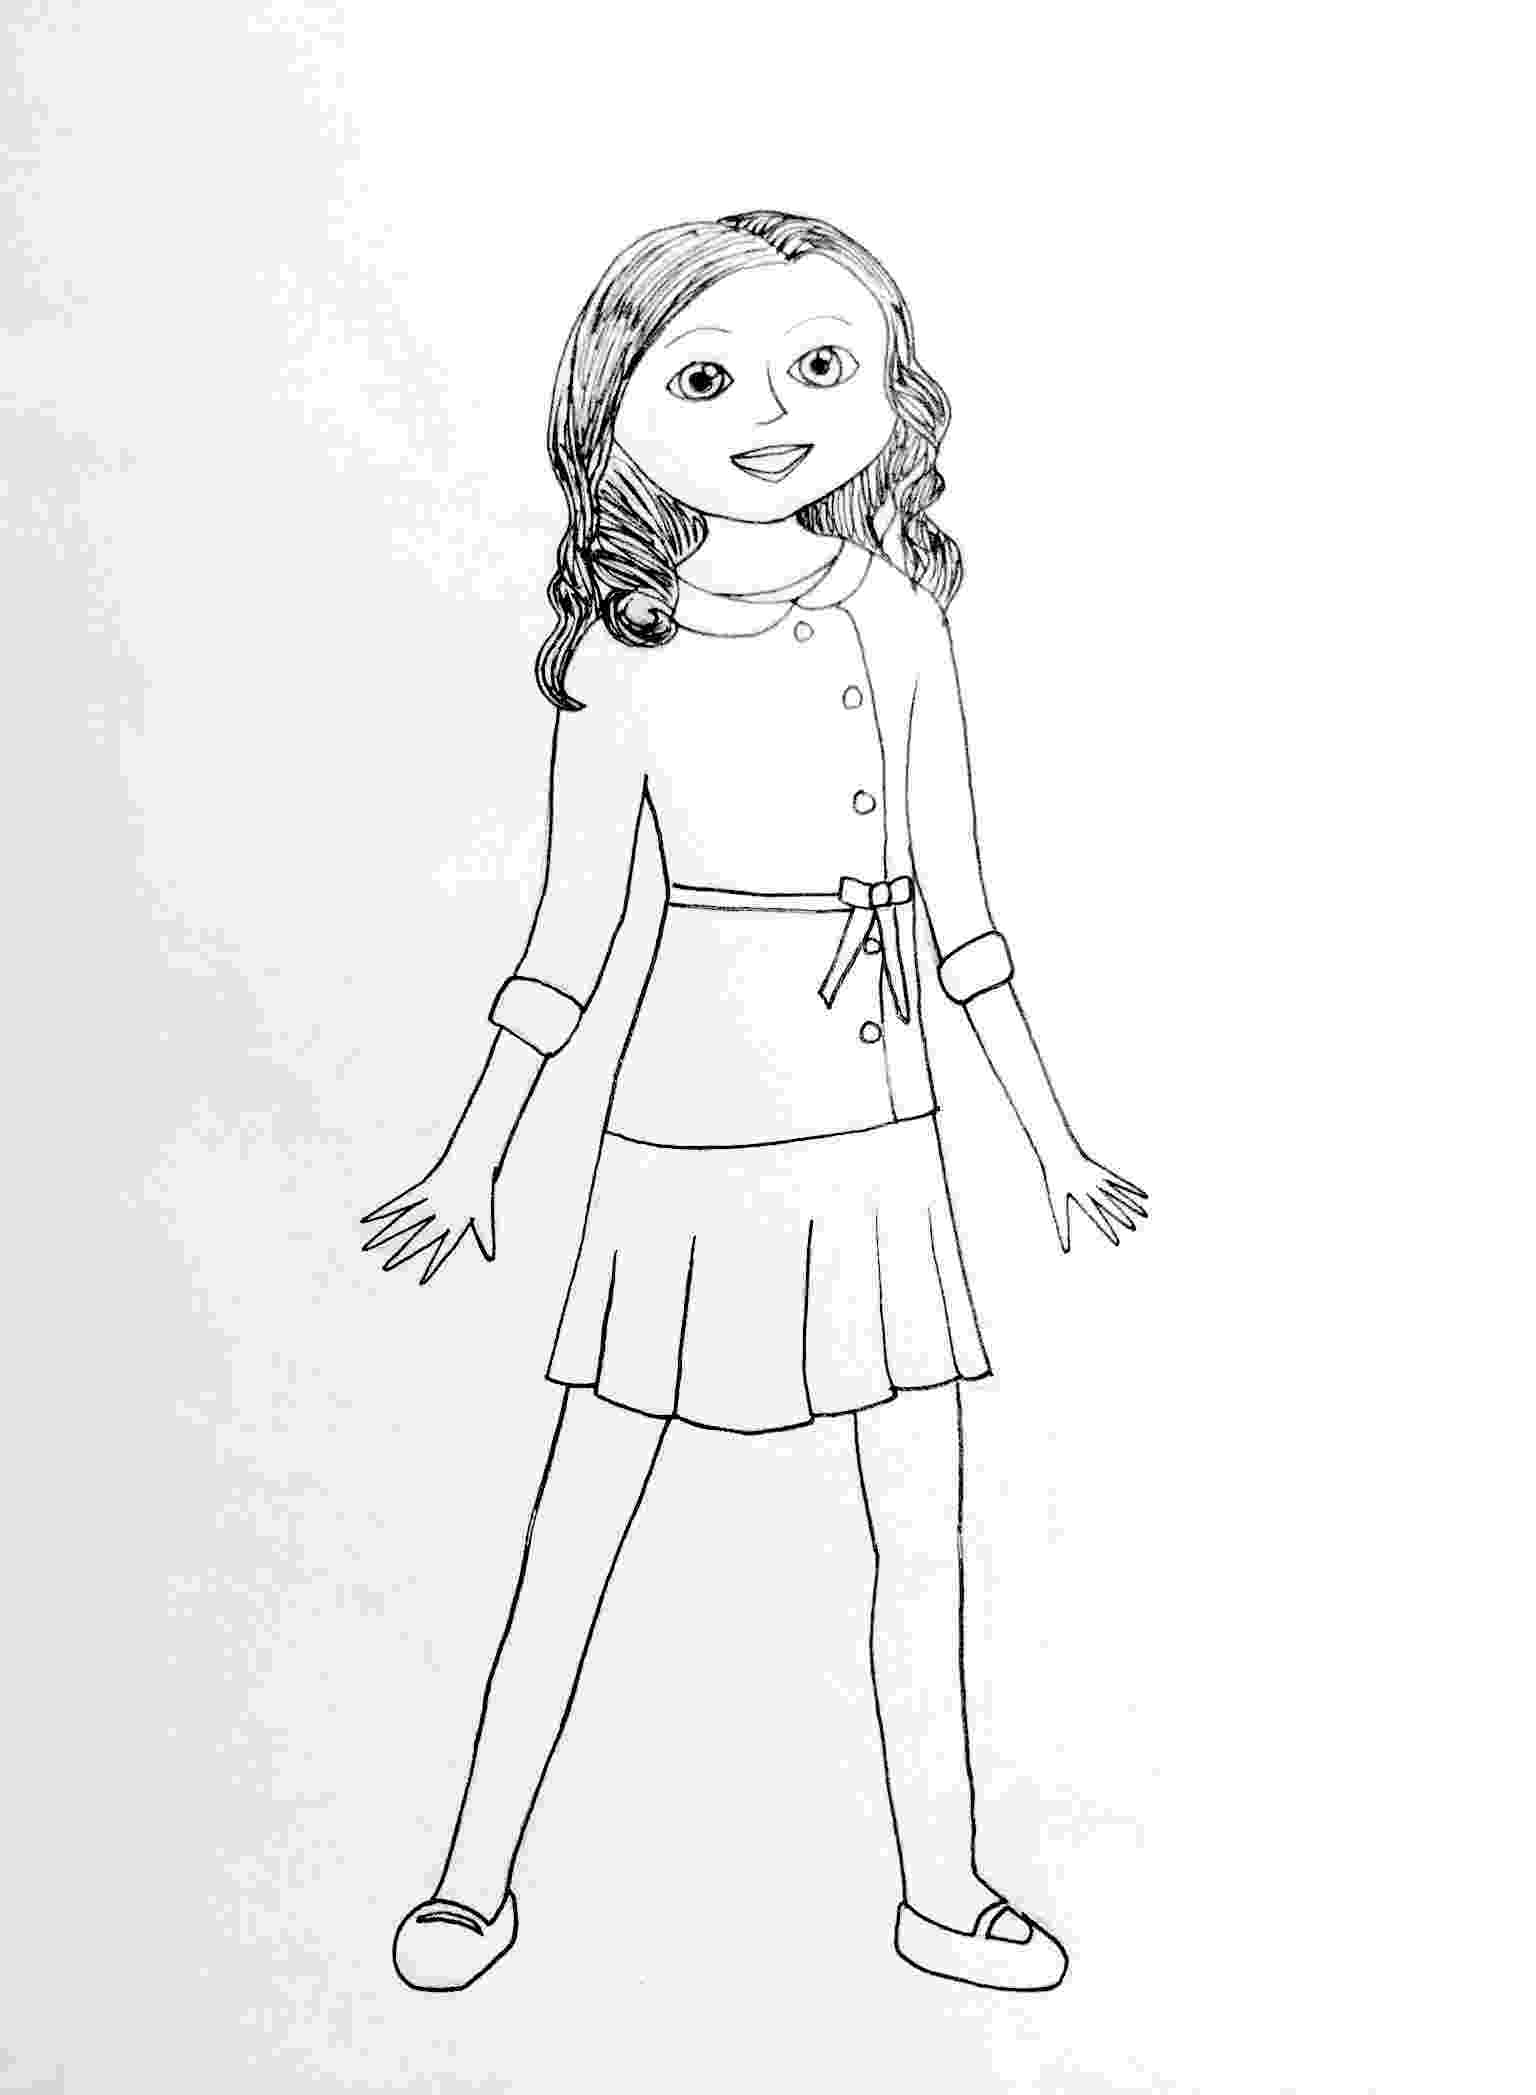 american girl doll pictures ag bandeau doll coloring page wecoloringpagecom doll girl pictures american